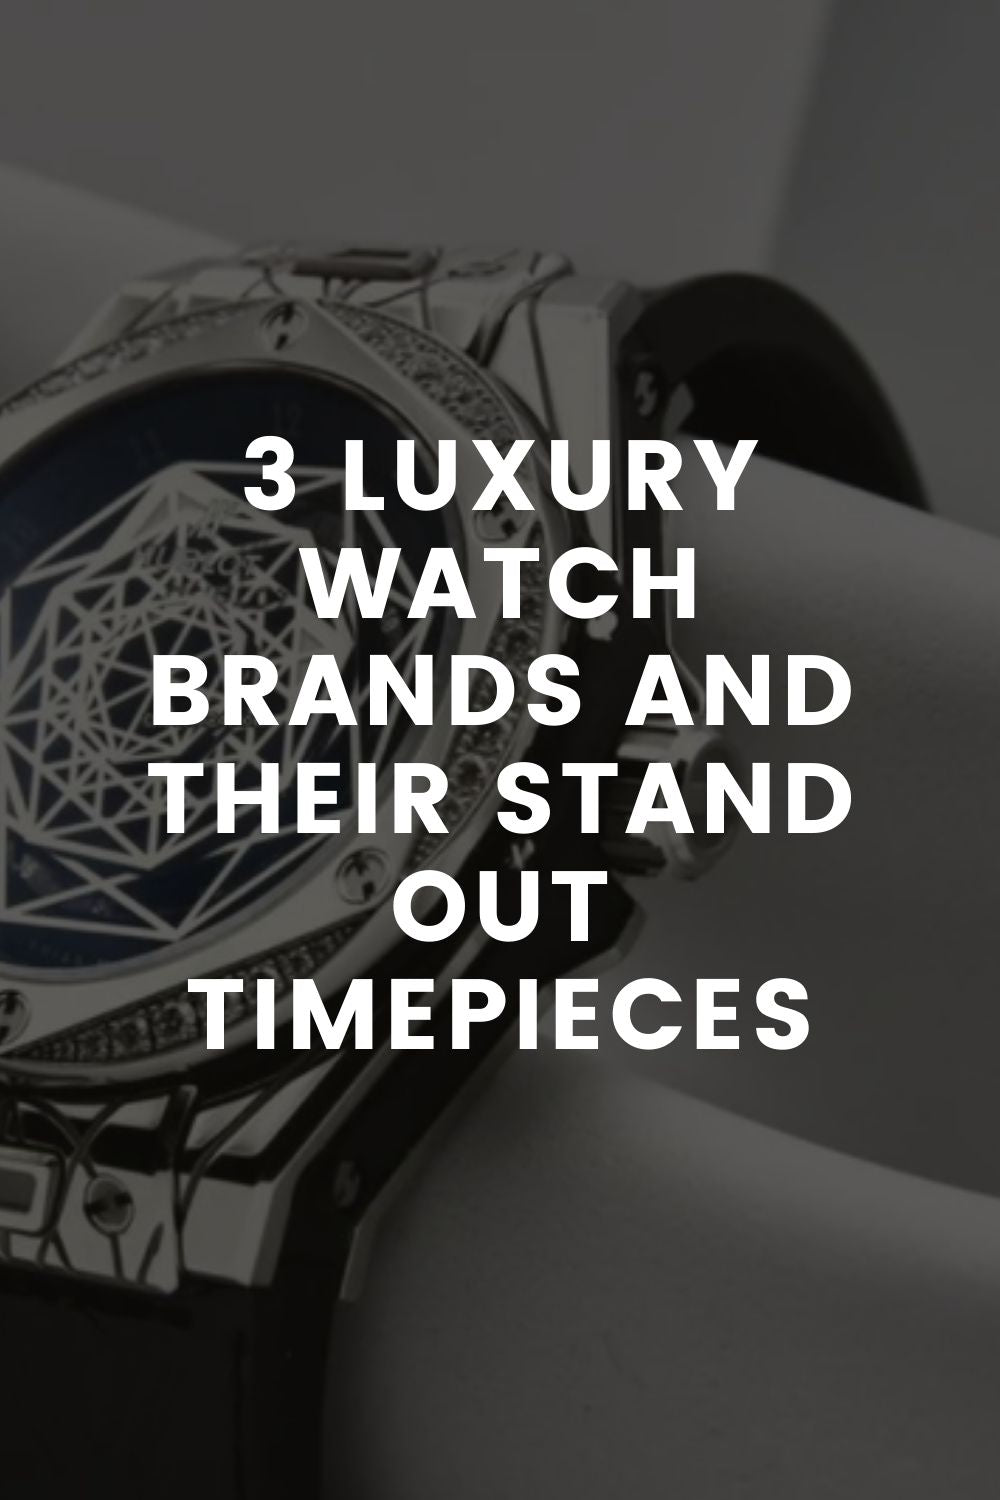 3 Luxury Watch Brands and Their Stand Out Timepieces